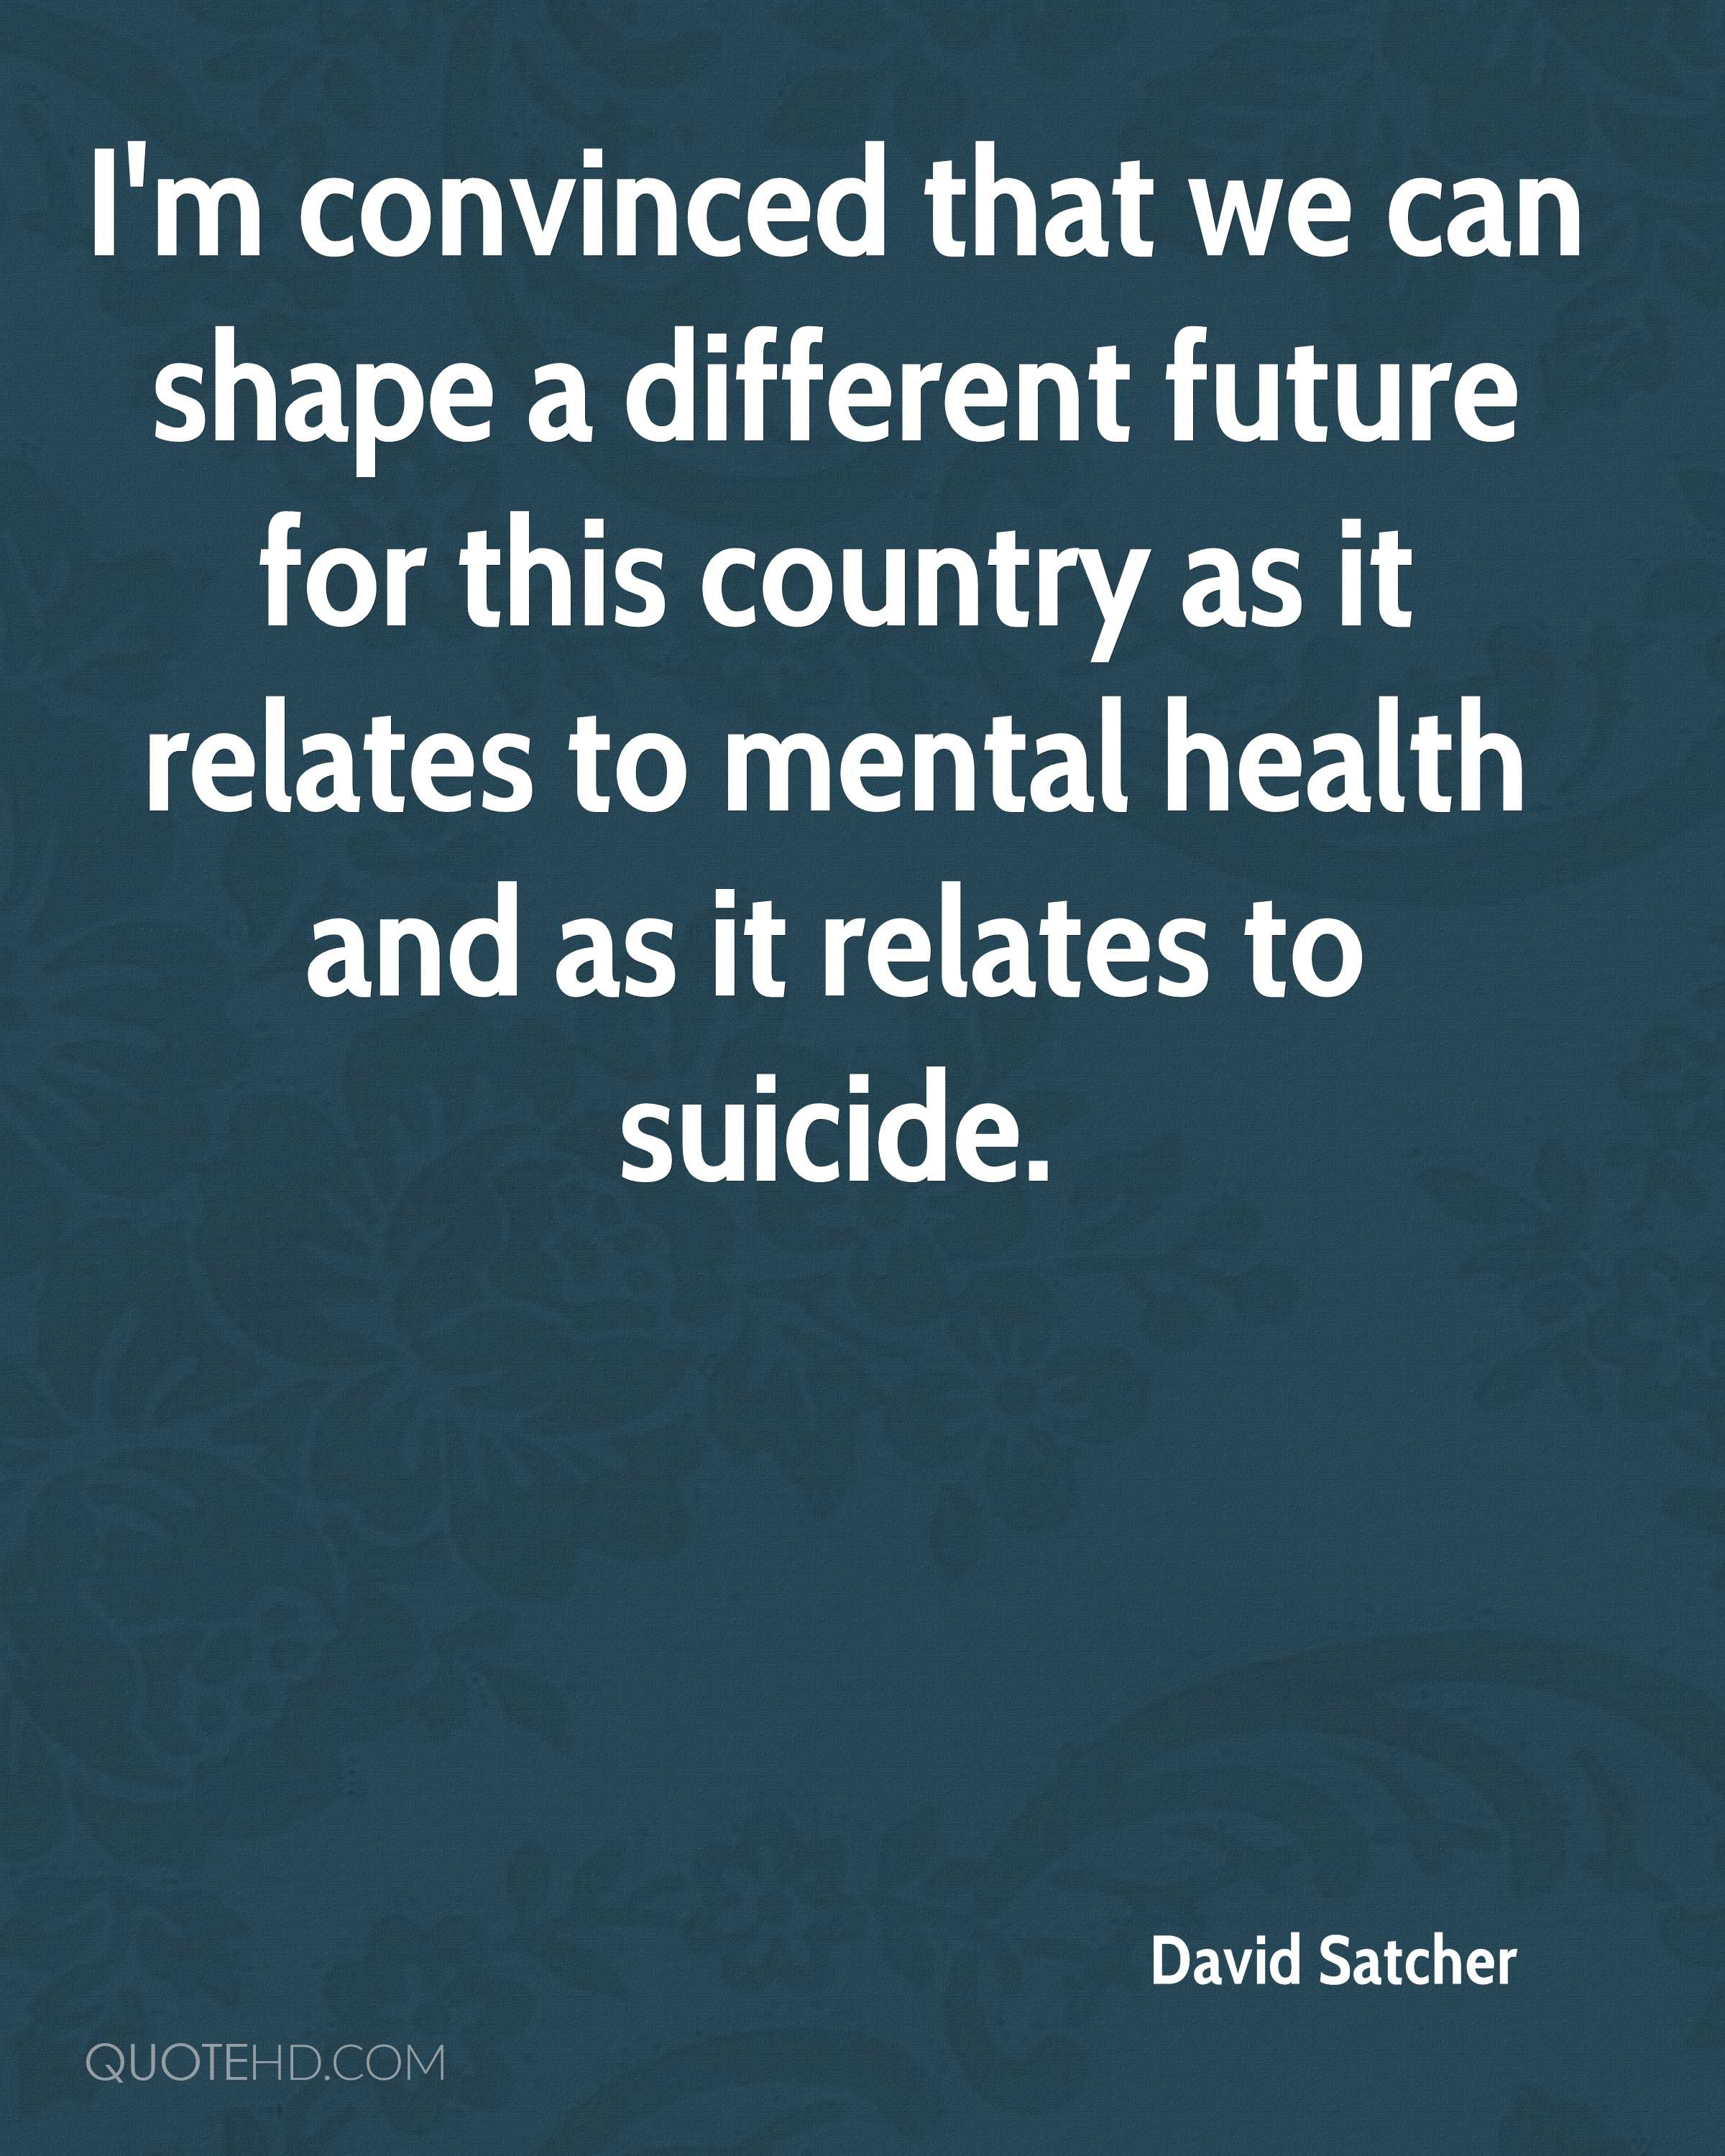 I'm convinced that we can shape a different future for this country as it relates to mental health and as it relates to suicide.